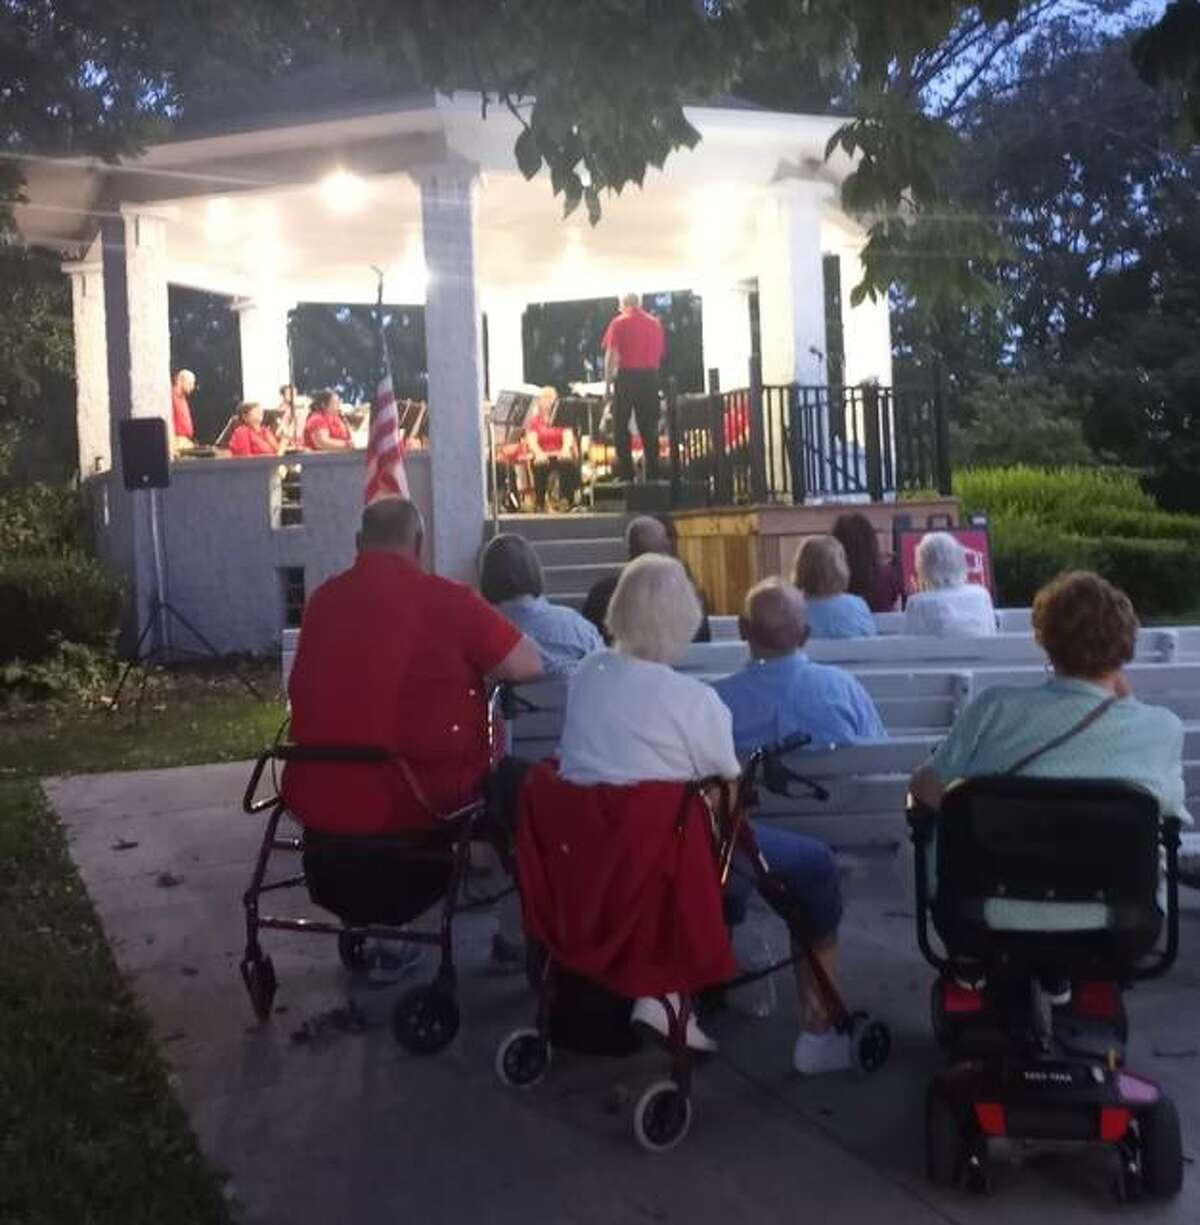 The Alton Municipal Band, led by conductor David Drillinger, held its second-to-last concert of the summer 2021 season Thursday in Riverview Park with long time guest vocalist Robyn Brandon. The season concludes Sunday with a 7 p.m. in Alton's Haskell Park.